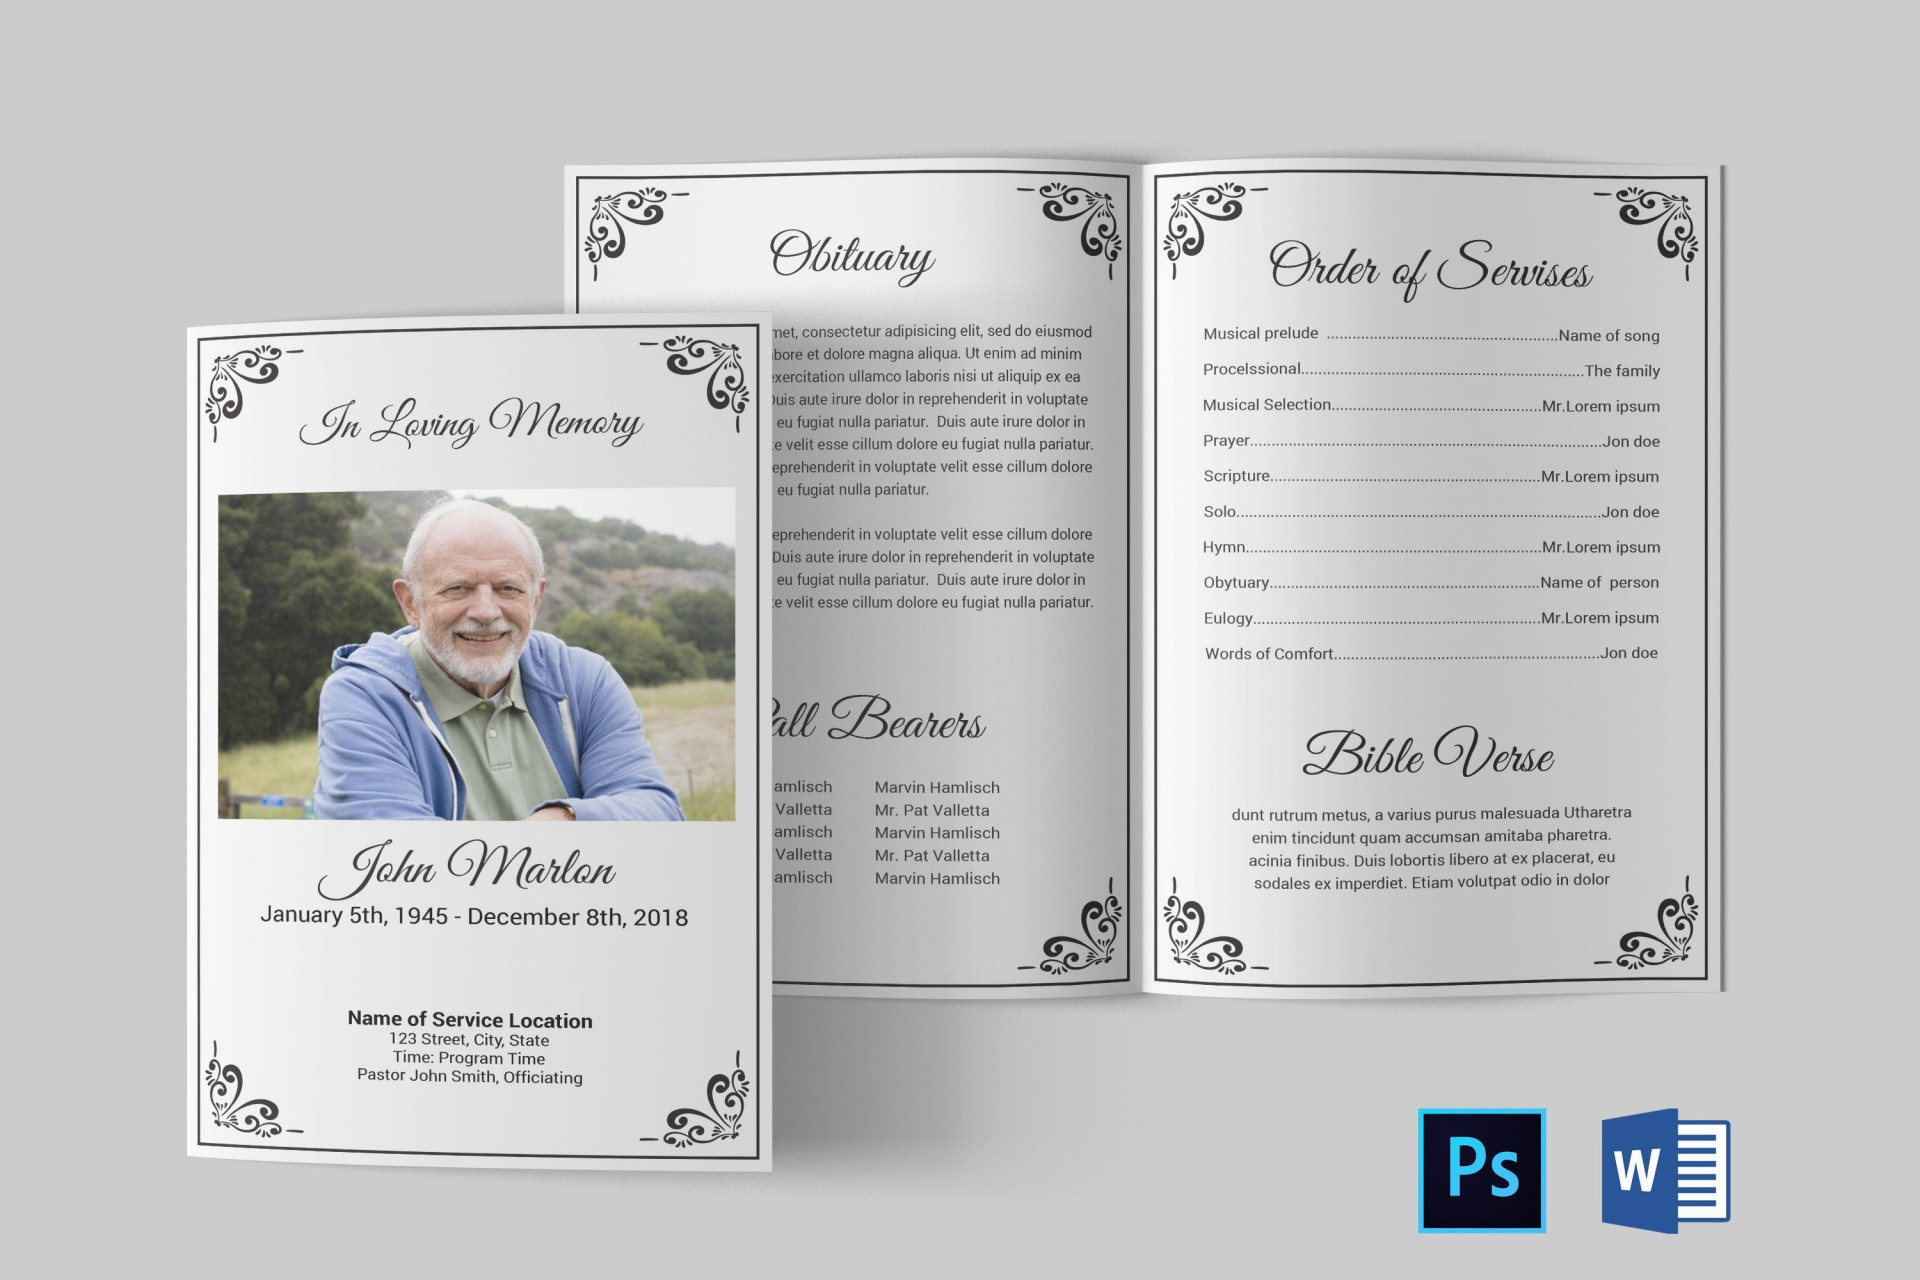 002 Stupendou Template For Funeral Program Free Image  Printable Download On Word Editable Pdf1920